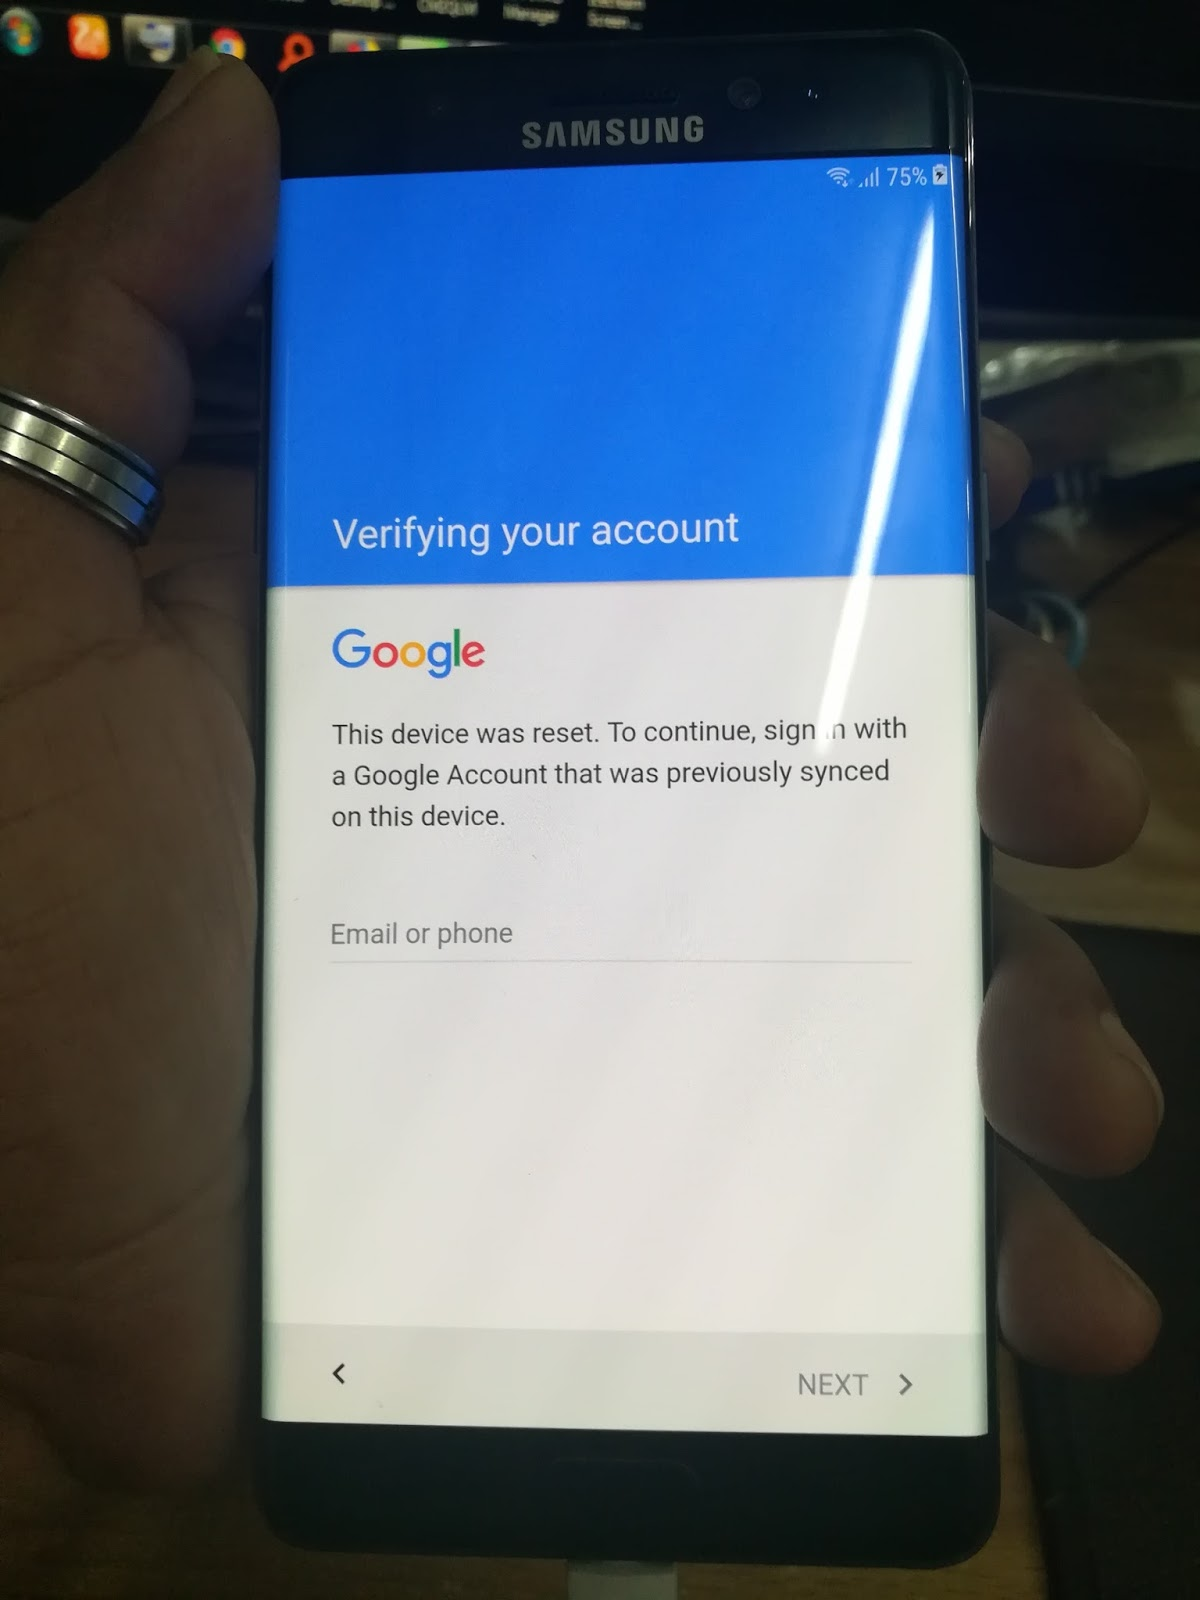 Samsung N935F Remove Frp With Combination File (Galaxy Note FE